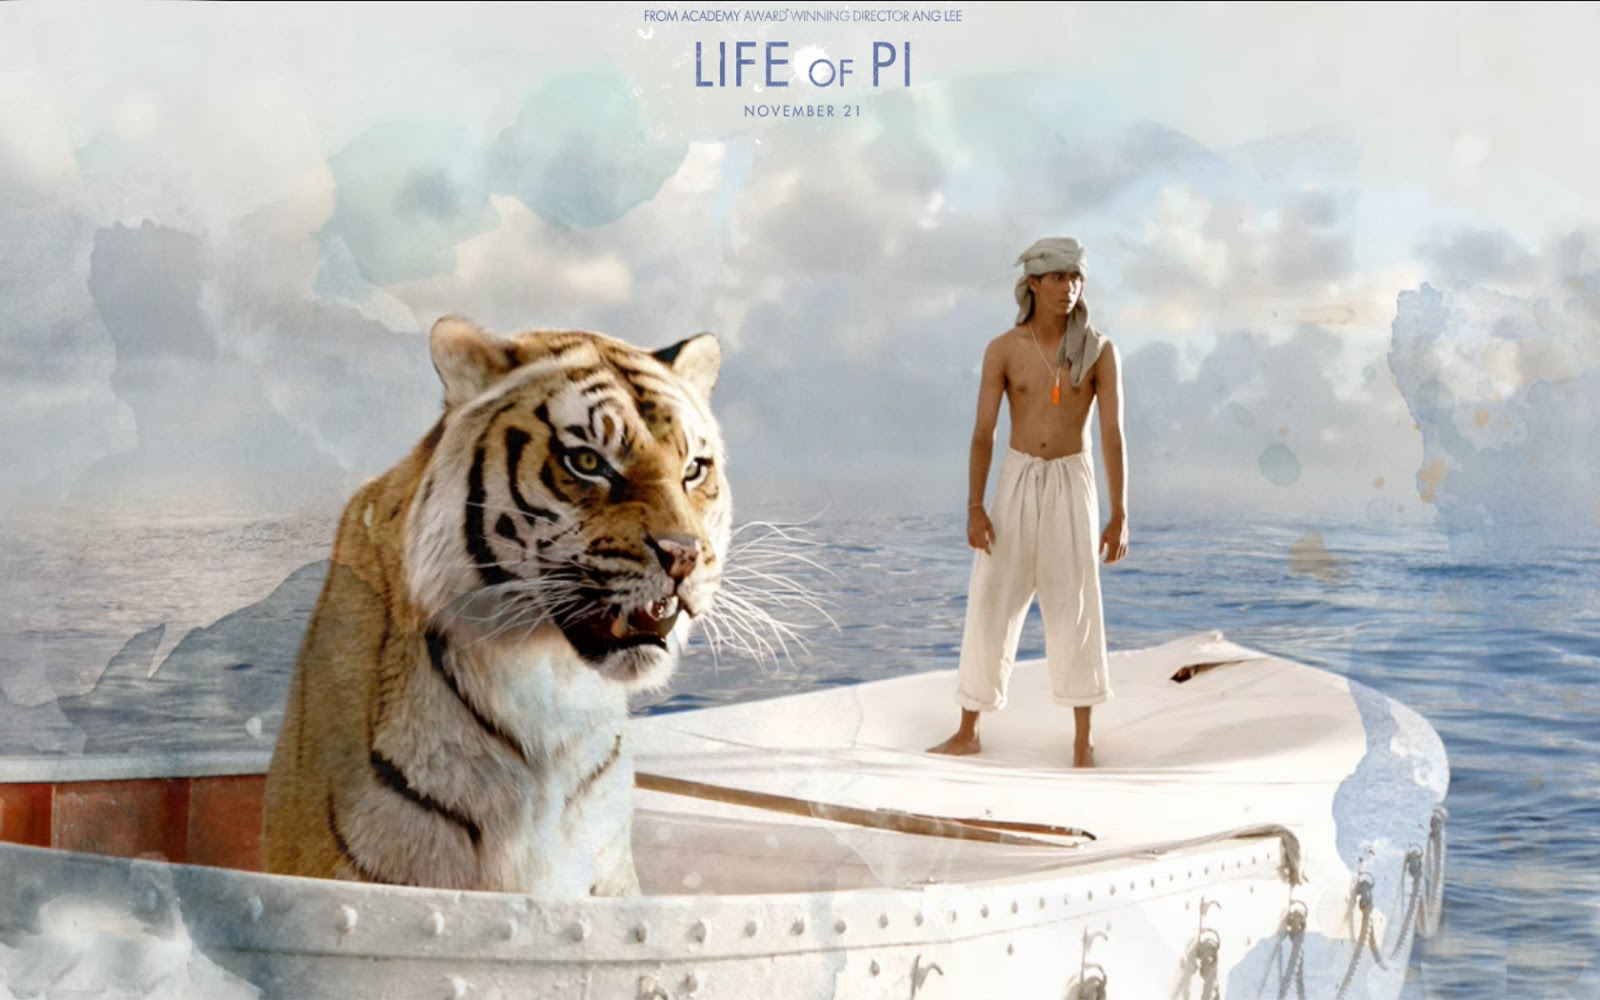 http://3.bp.blogspot.com/-FN3mq4FzWpc/UNjF-lq2KzI/AAAAAAAACPE/LrP0vCPQo4A/s1600/Life_of_Pi_movie_wallpapers-1680x1050.bmp-003.jpg